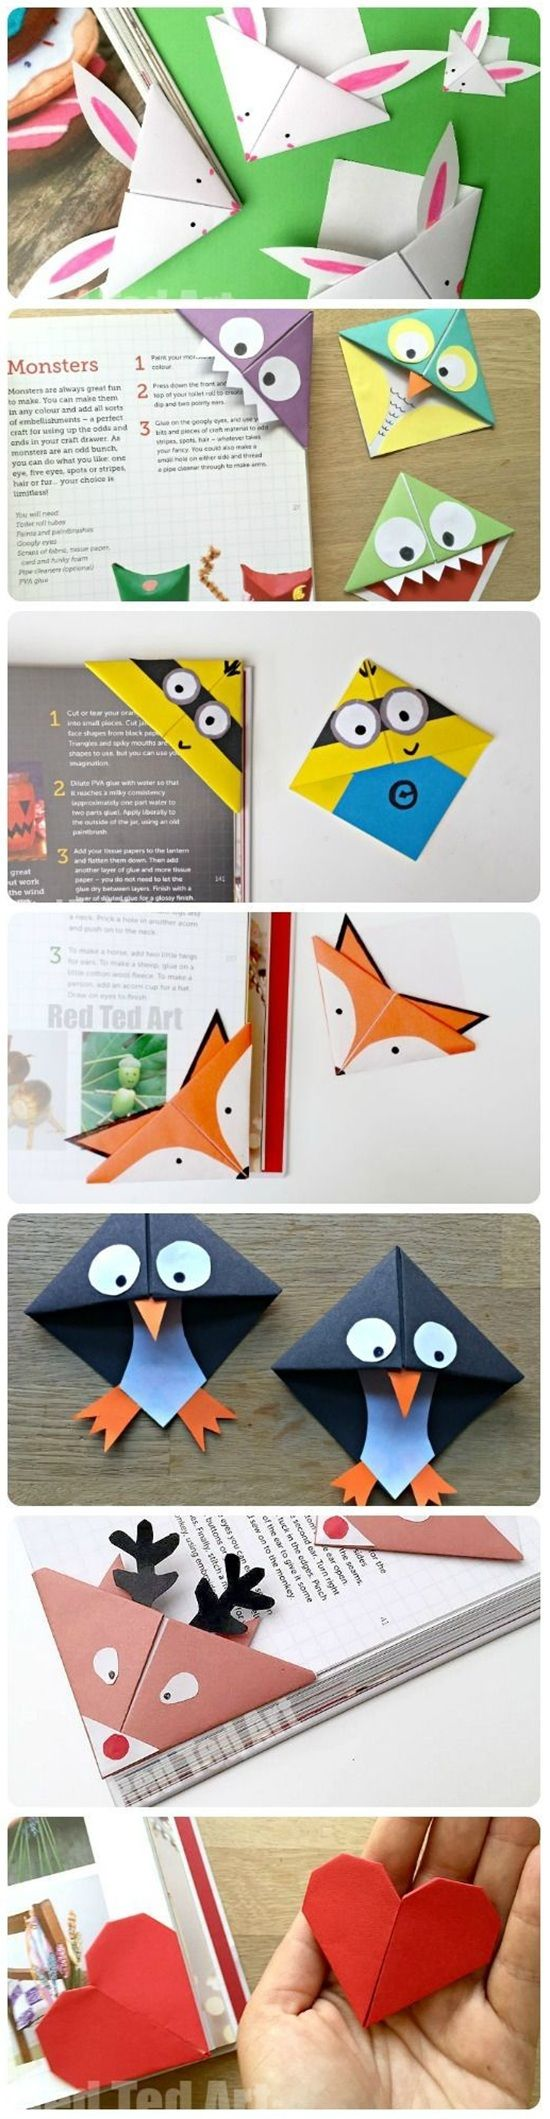 20 Back To School DIY Crafts For Kids & Teens